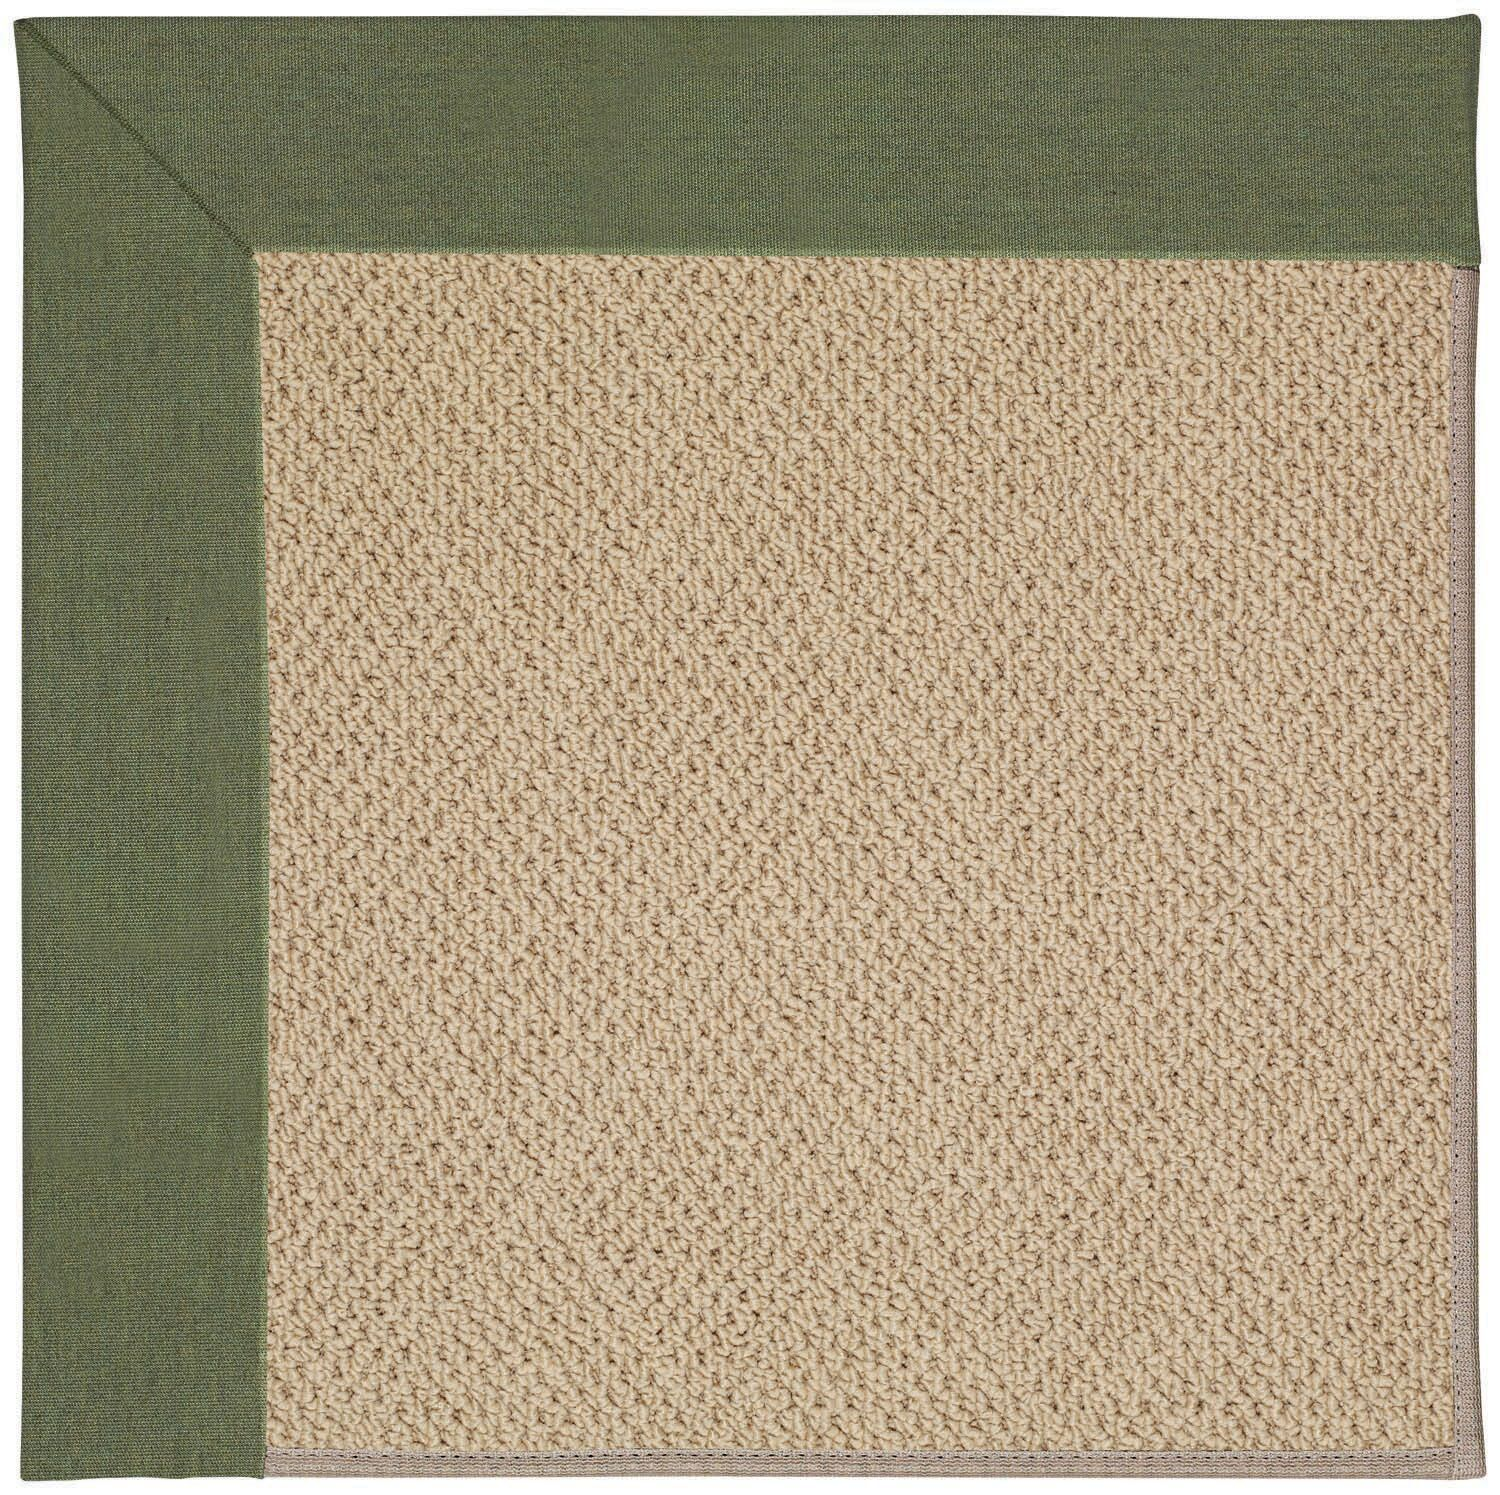 Lisle Machine Tufted Plant Green and Beige Indoor/Outdoor Area Rug Rug Size: Square 4'